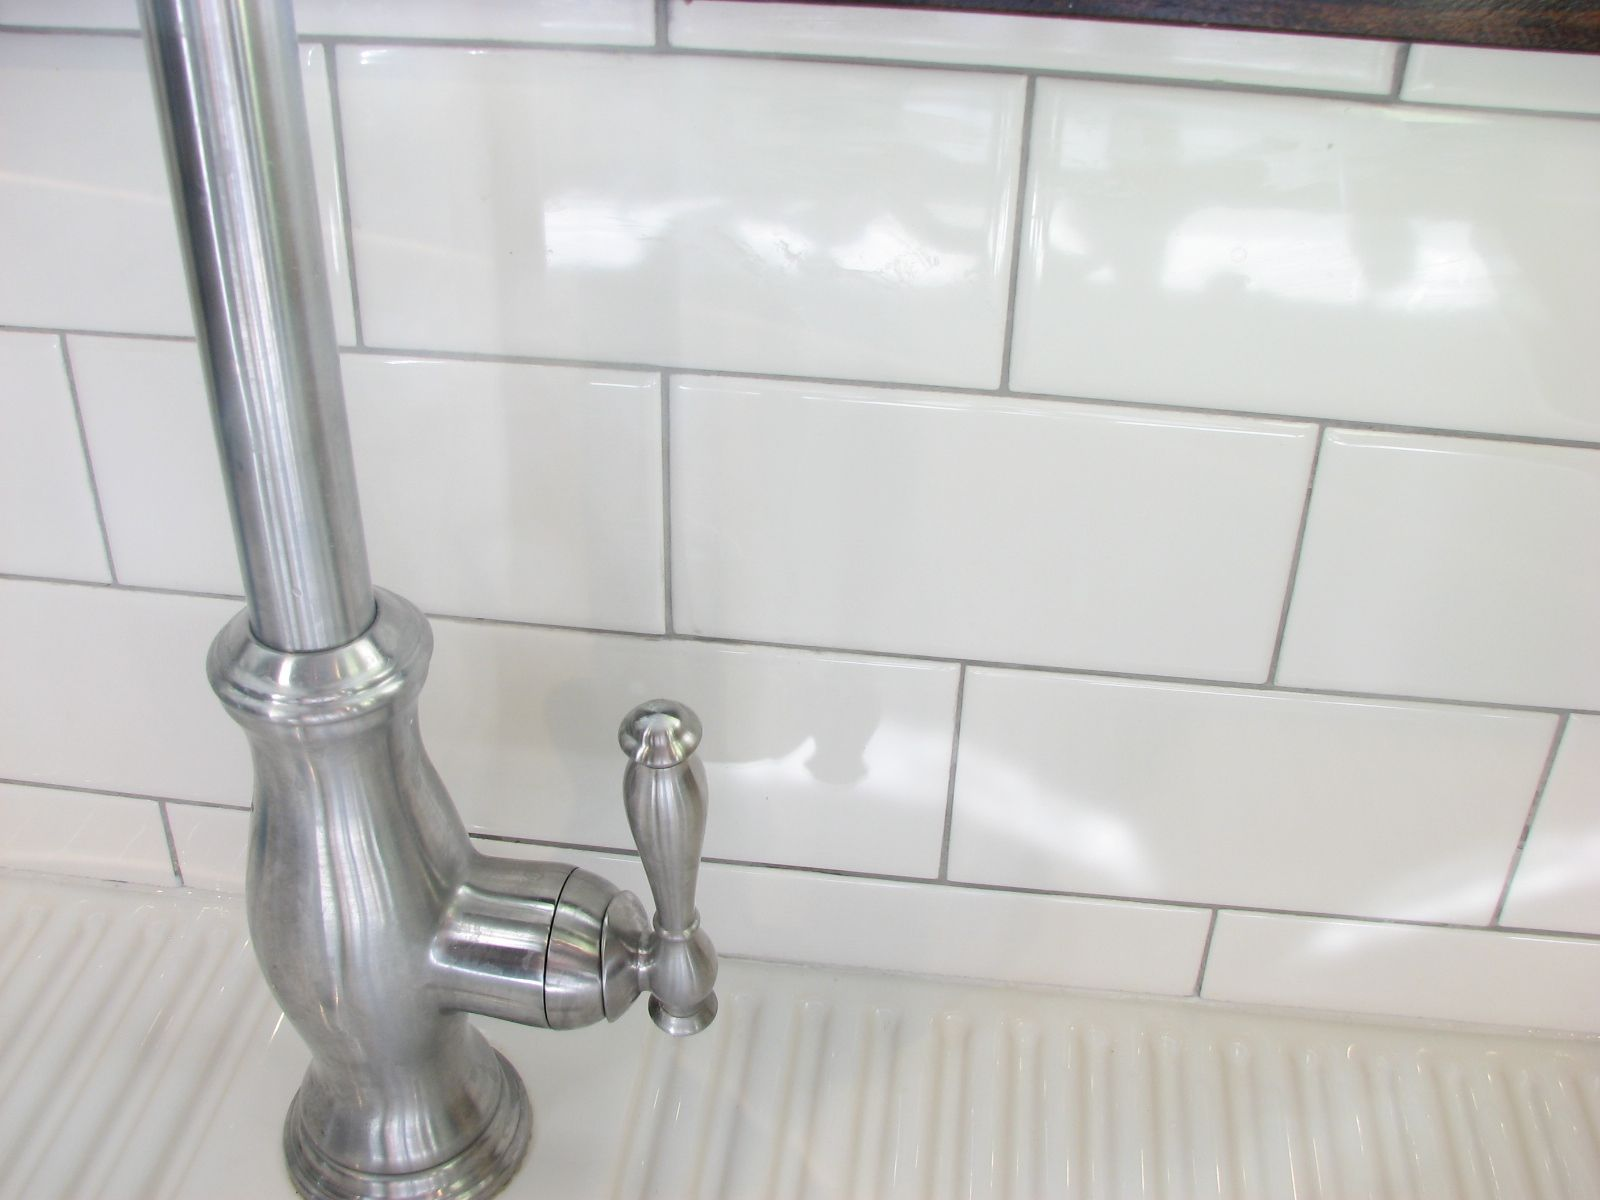 Subway tile with silver grout and white caulking along bottom ...